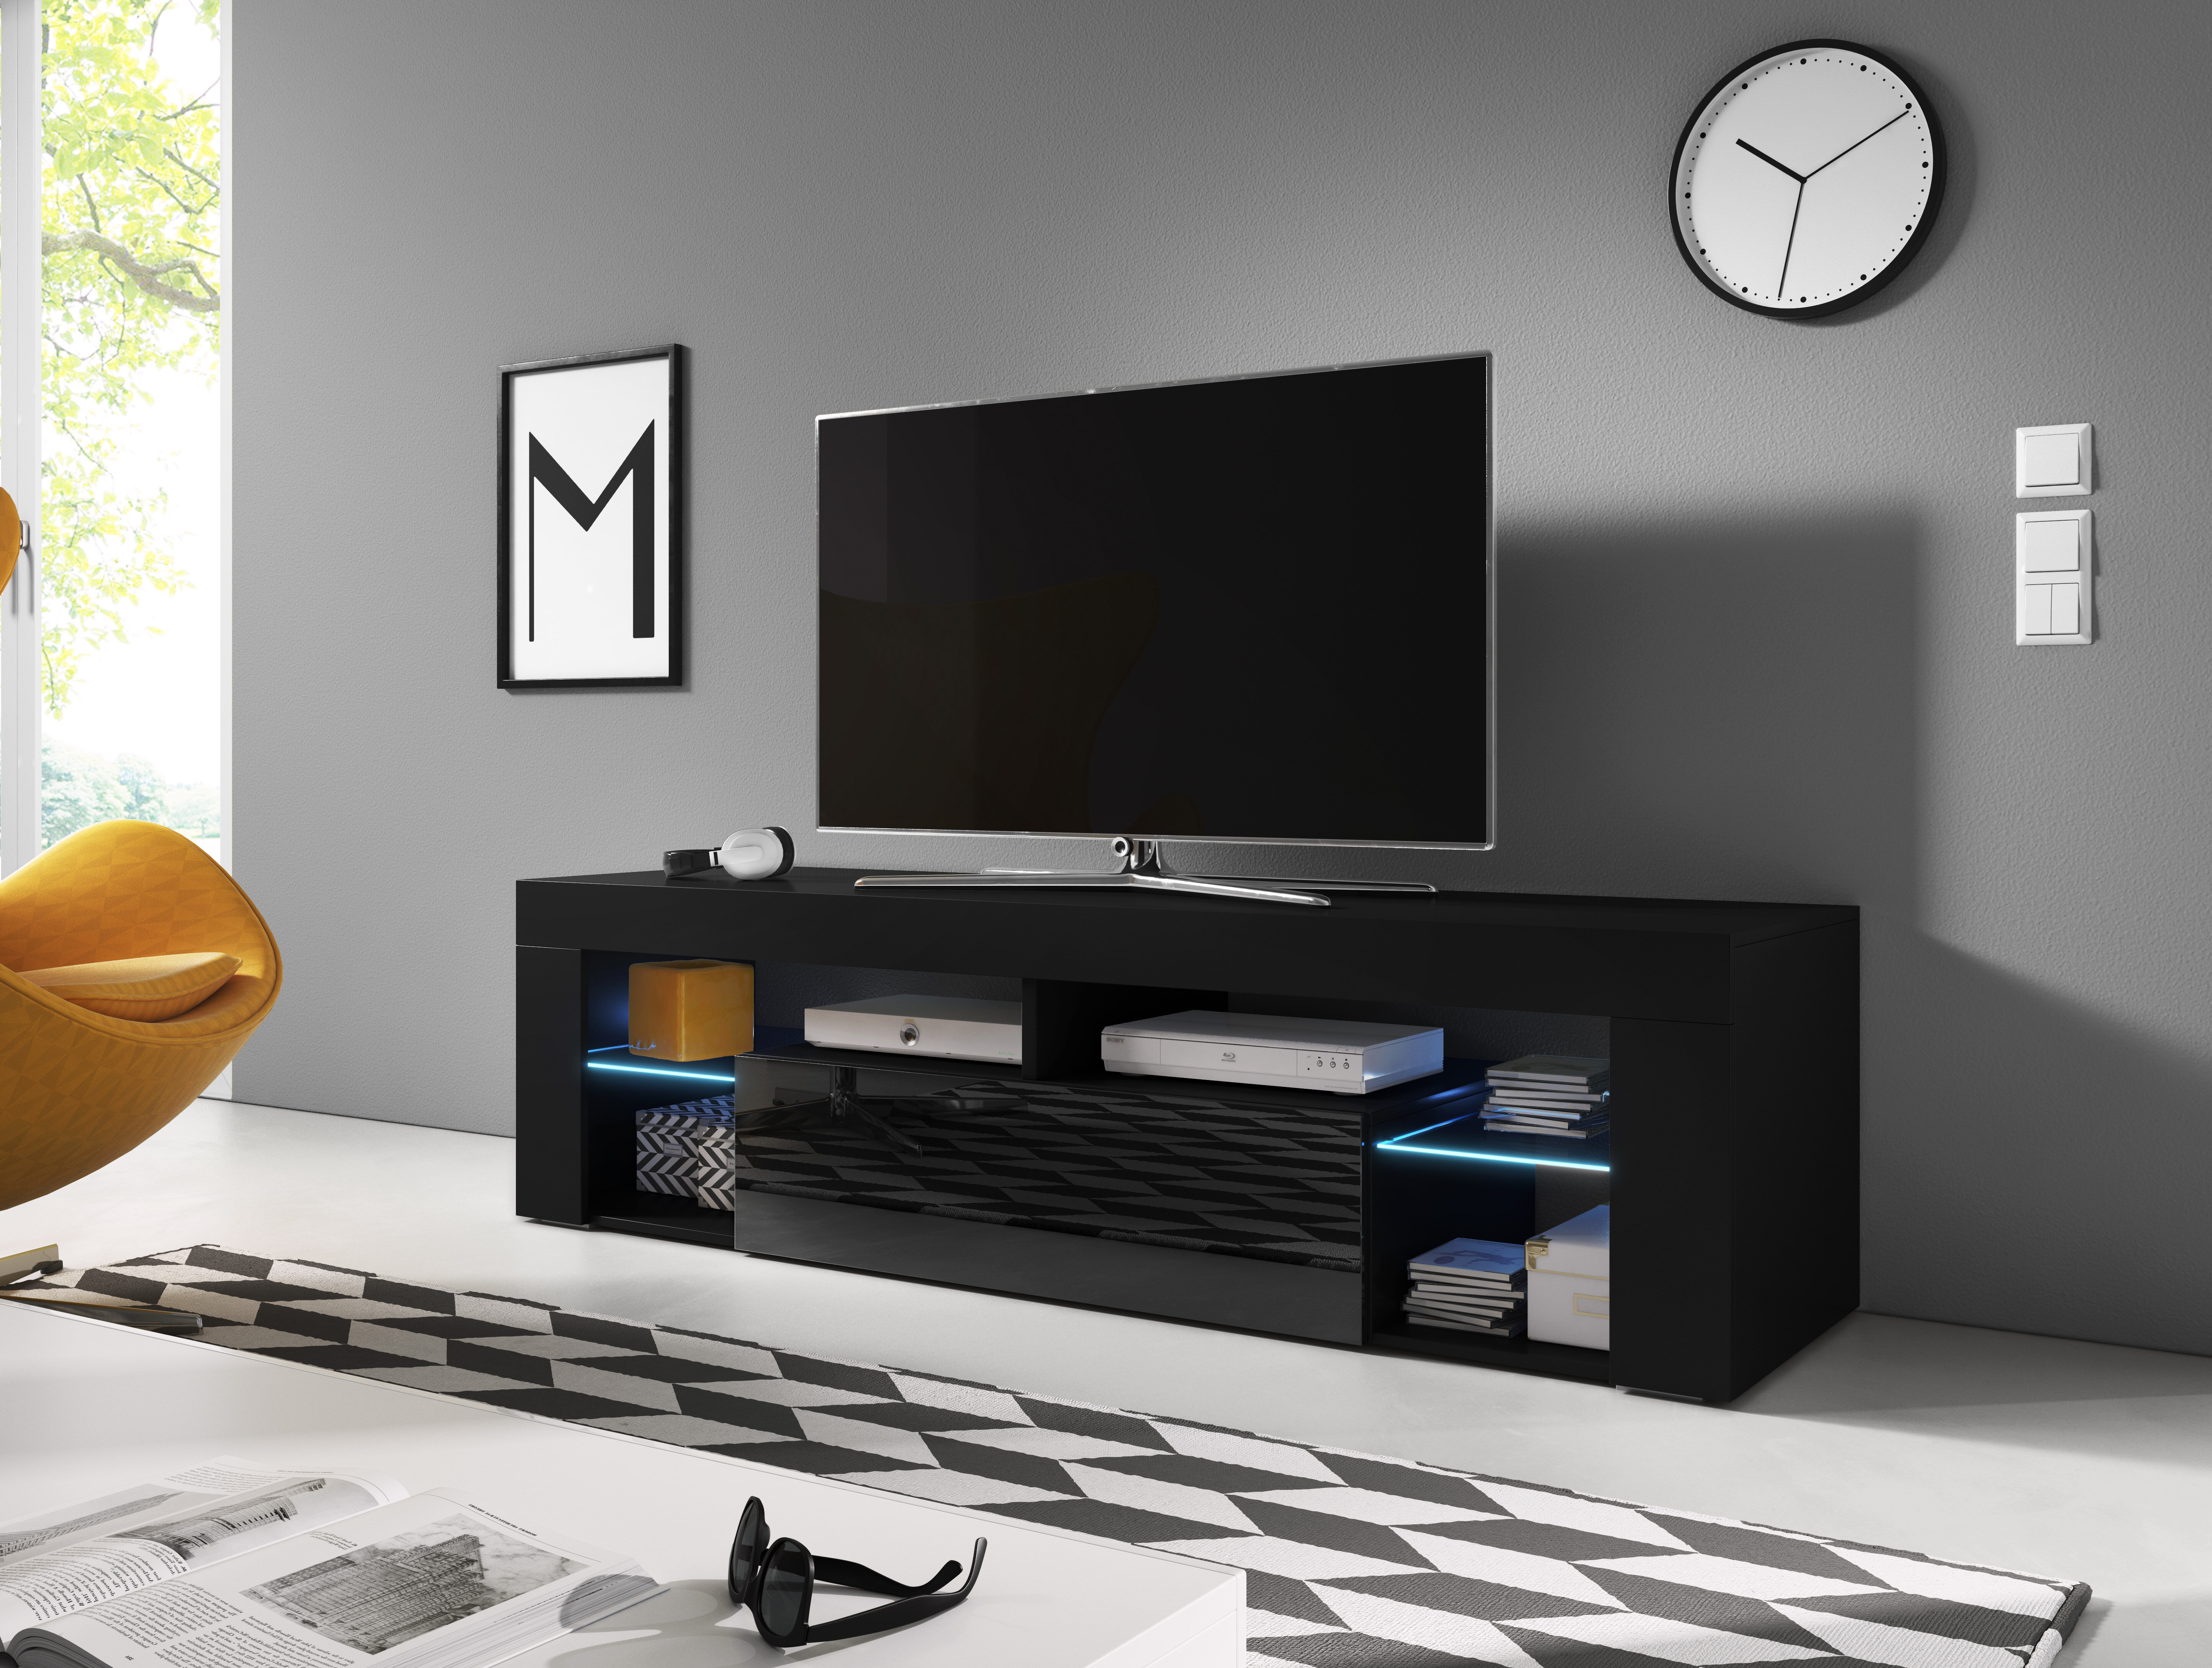 Metro Lane Bevelde Tv Stand For Tvs Up To 60 With Led Lighting Reviews Wayfair Co Uk